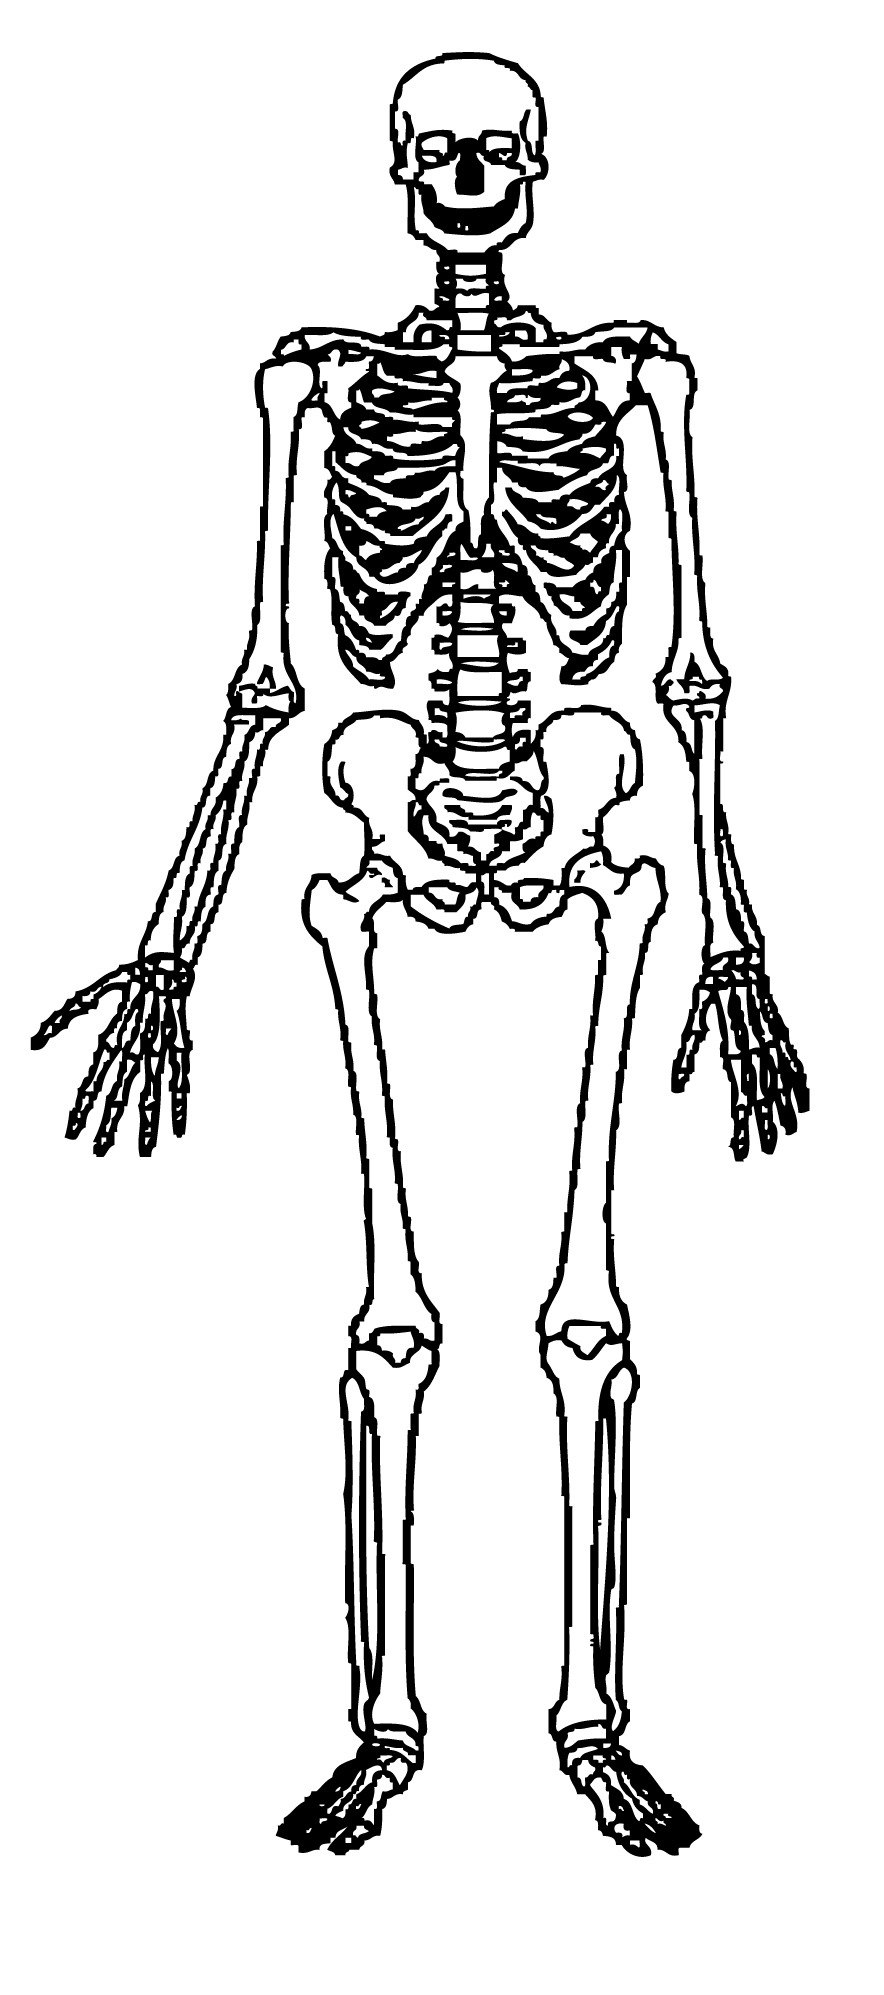 hight resolution of skeleton clipart free download clip art on 4